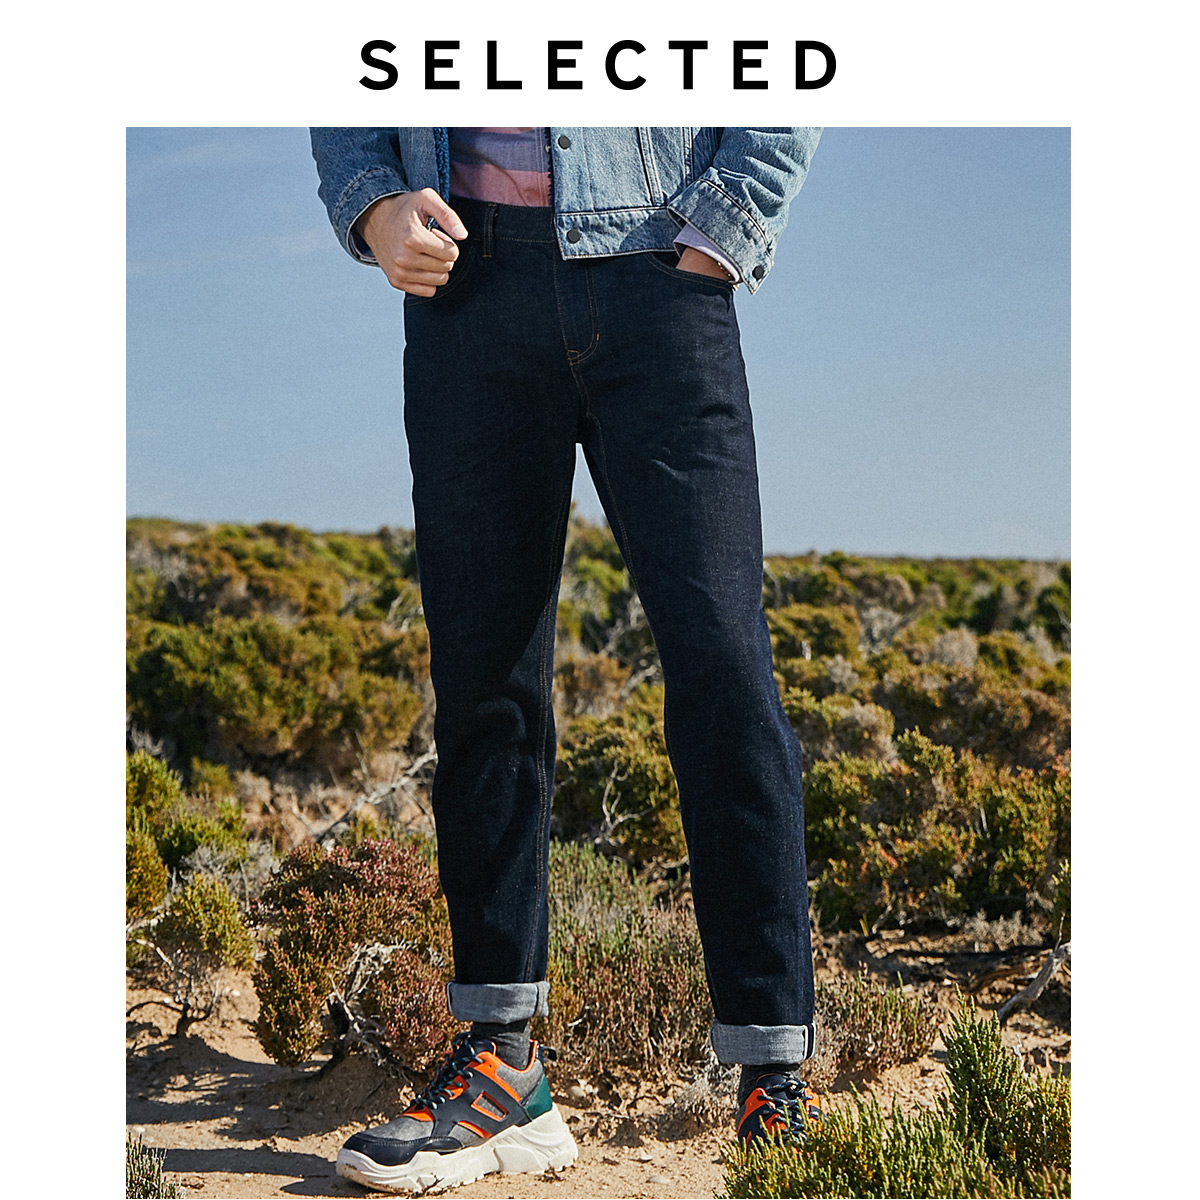 SELECTED Men's Winter Spliced Roll-up Tapered Jeans L|419432525